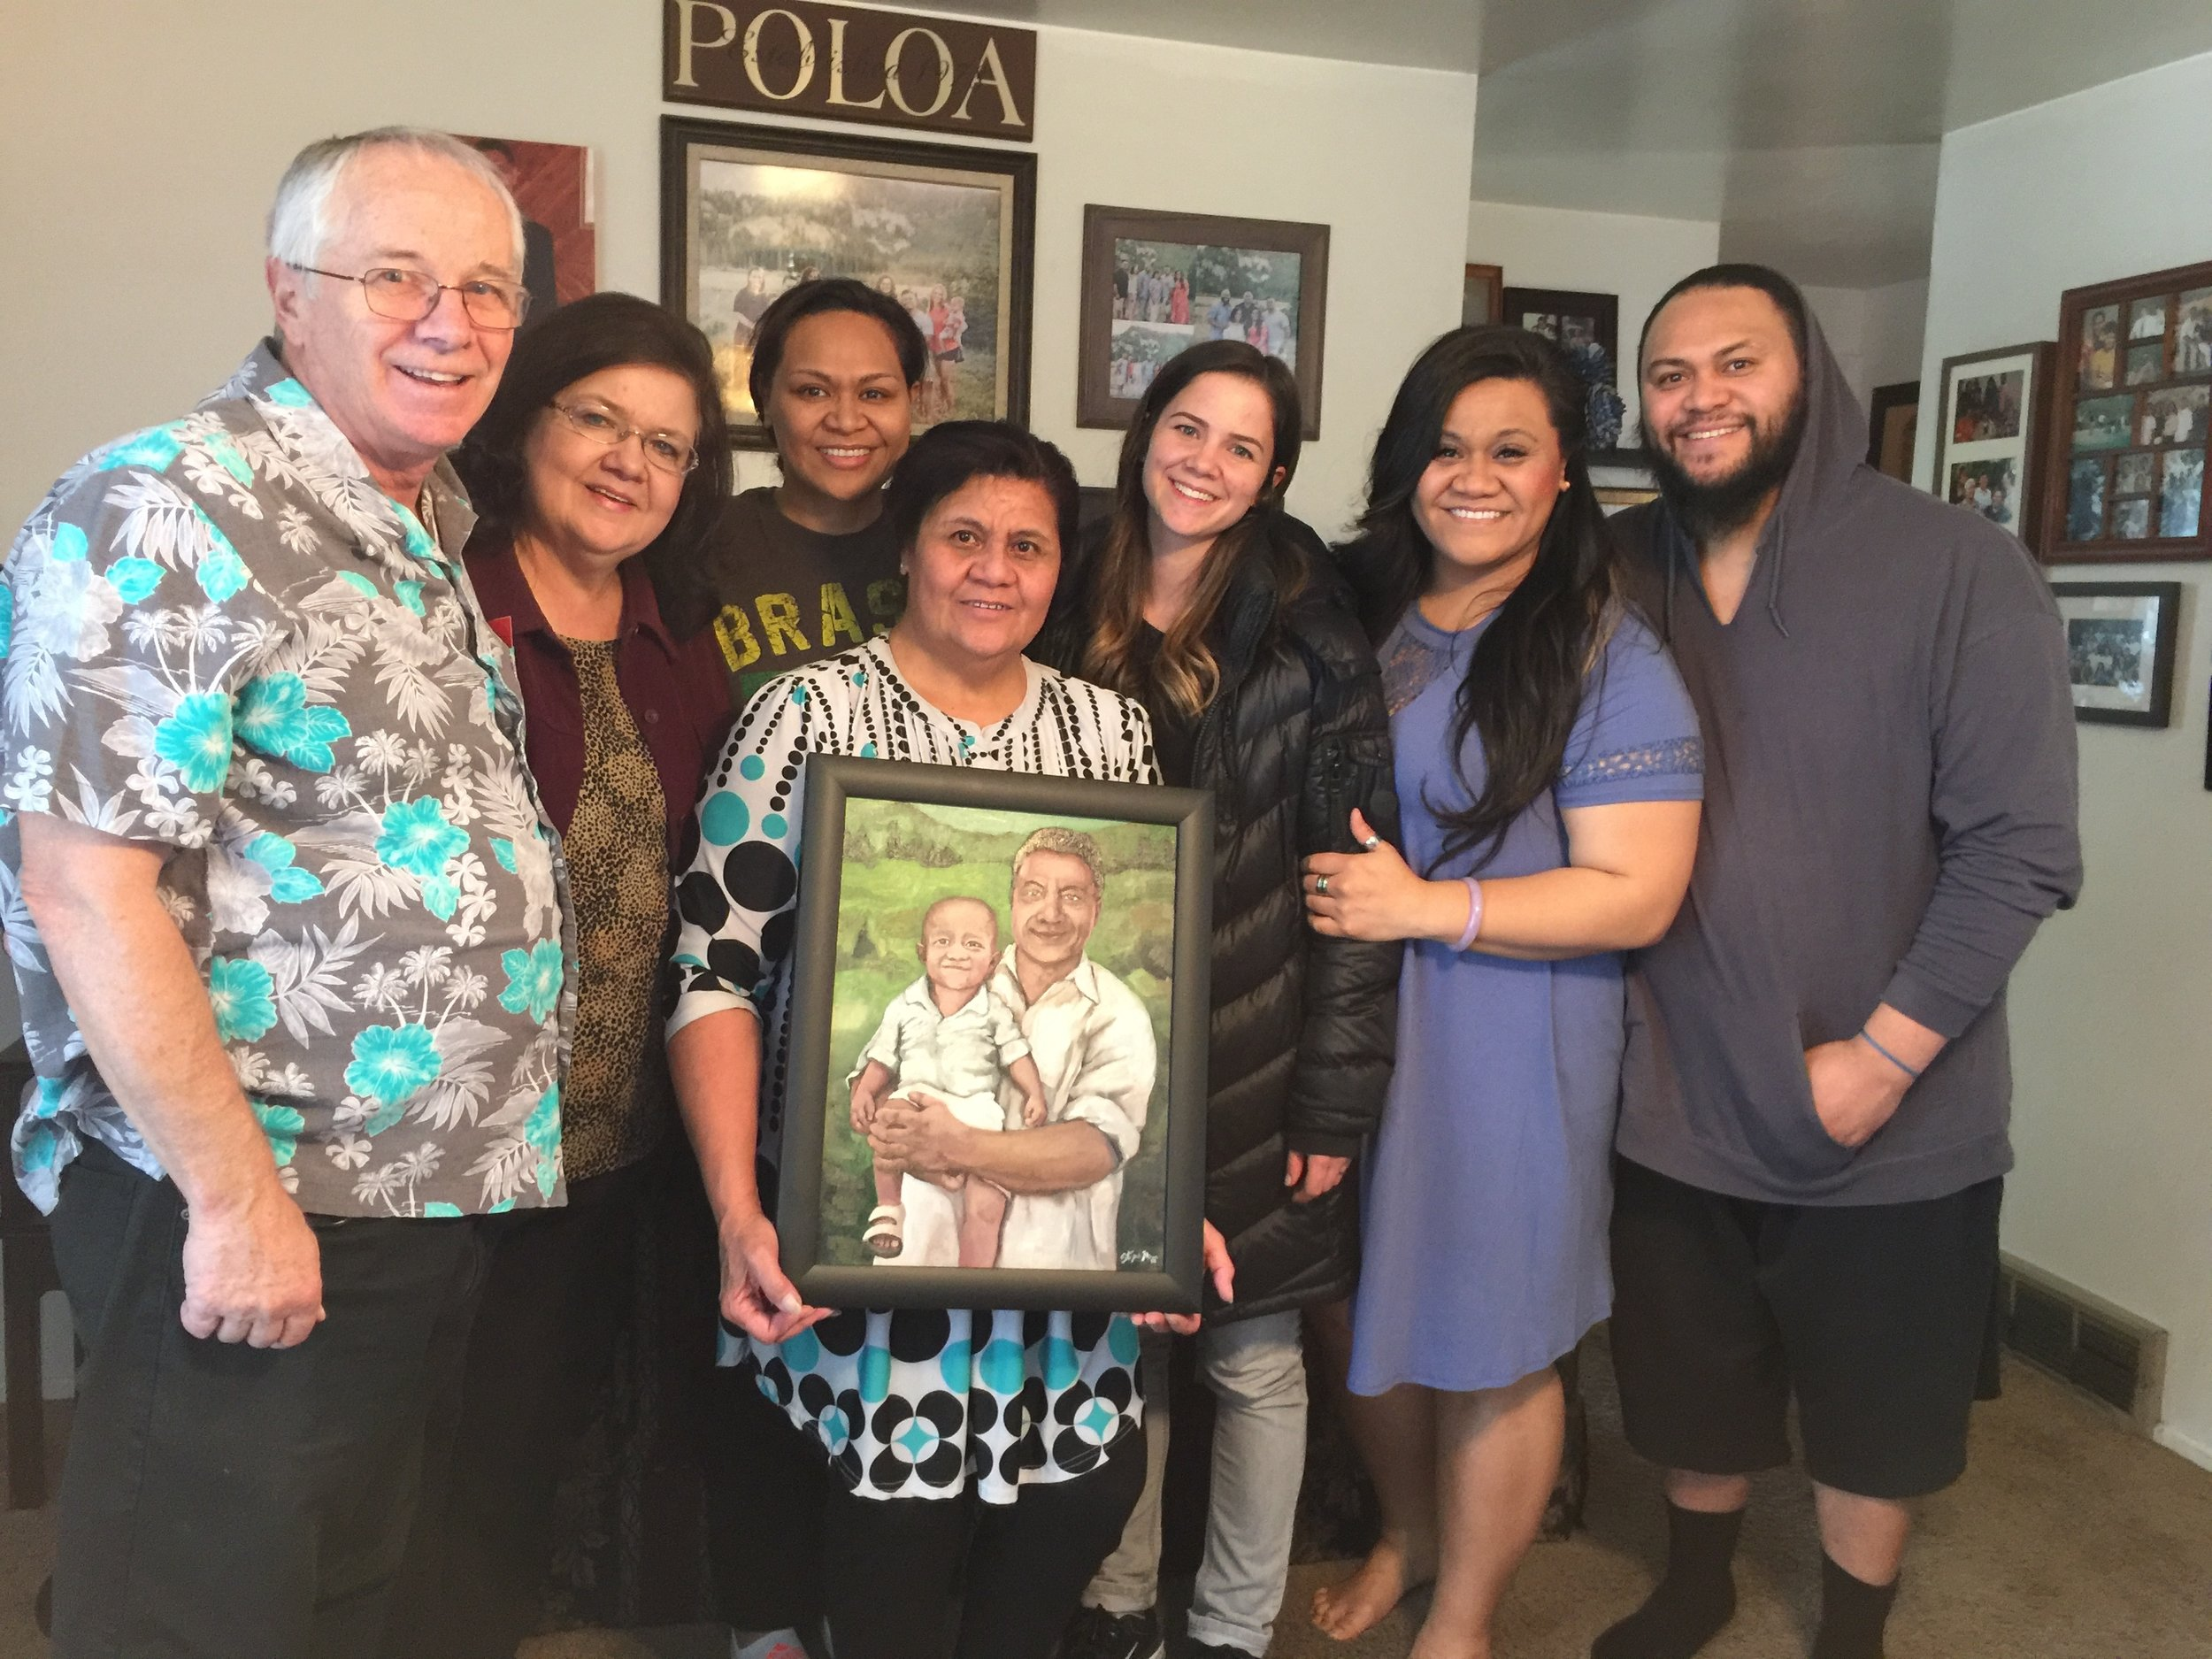 This is my parents and I giving the painting and poem to the Poloa family.